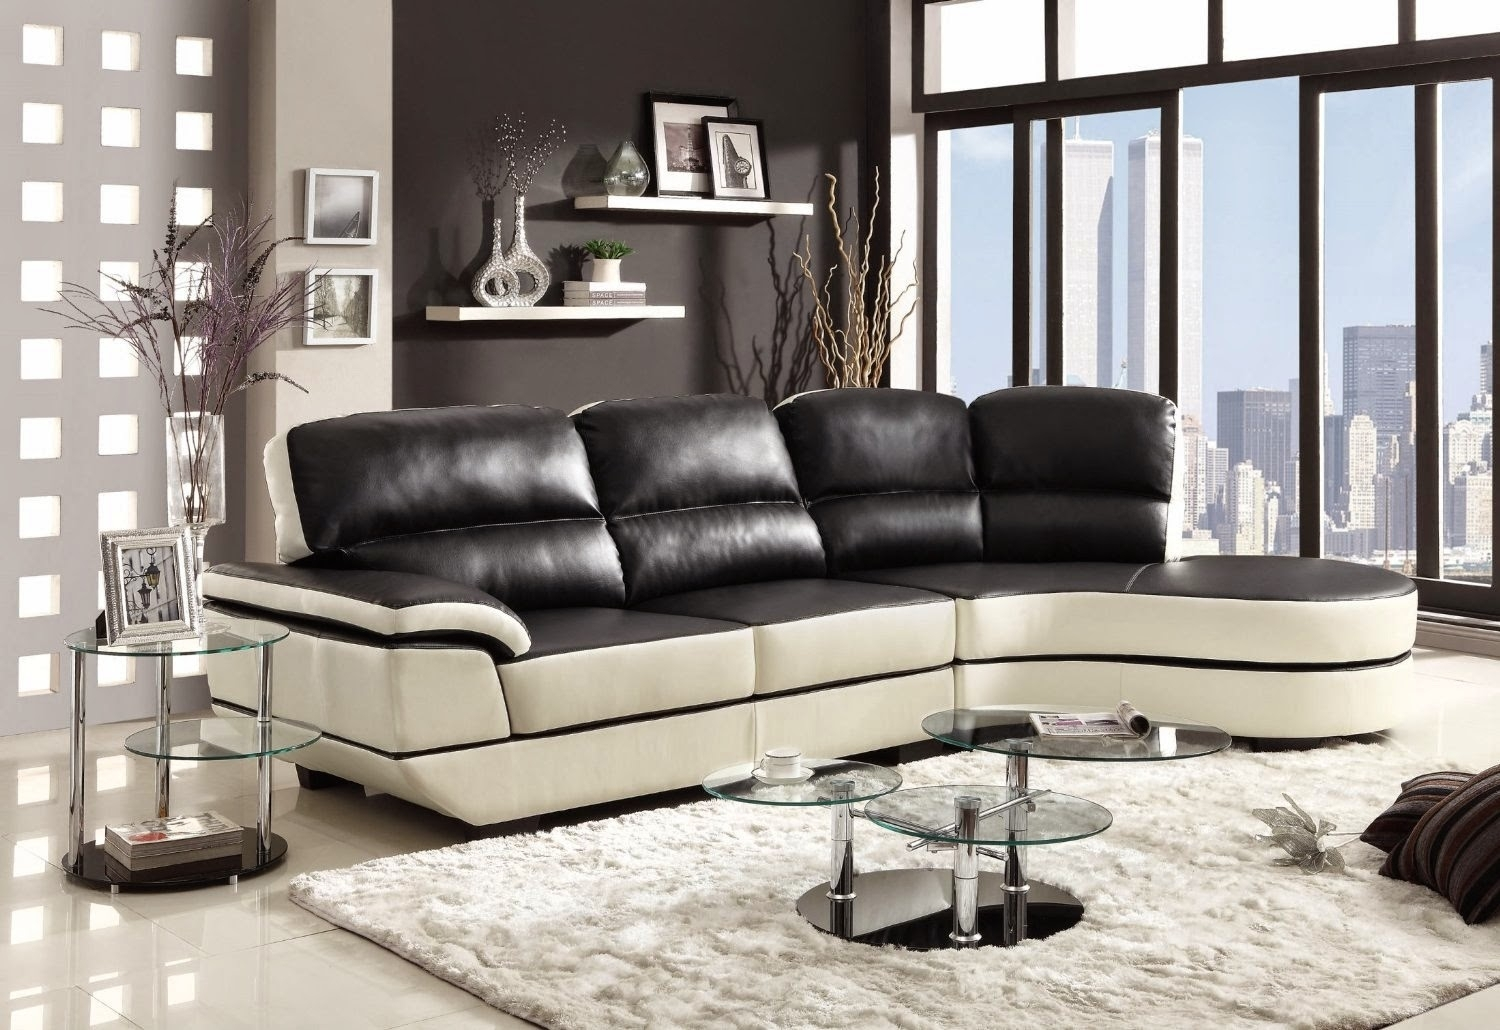 Furniture : Sectional Sofa Eugene Or Sectional Sofa 2 Piece Set in Eugene Oregon Sectional Sofas (Image 7 of 10)